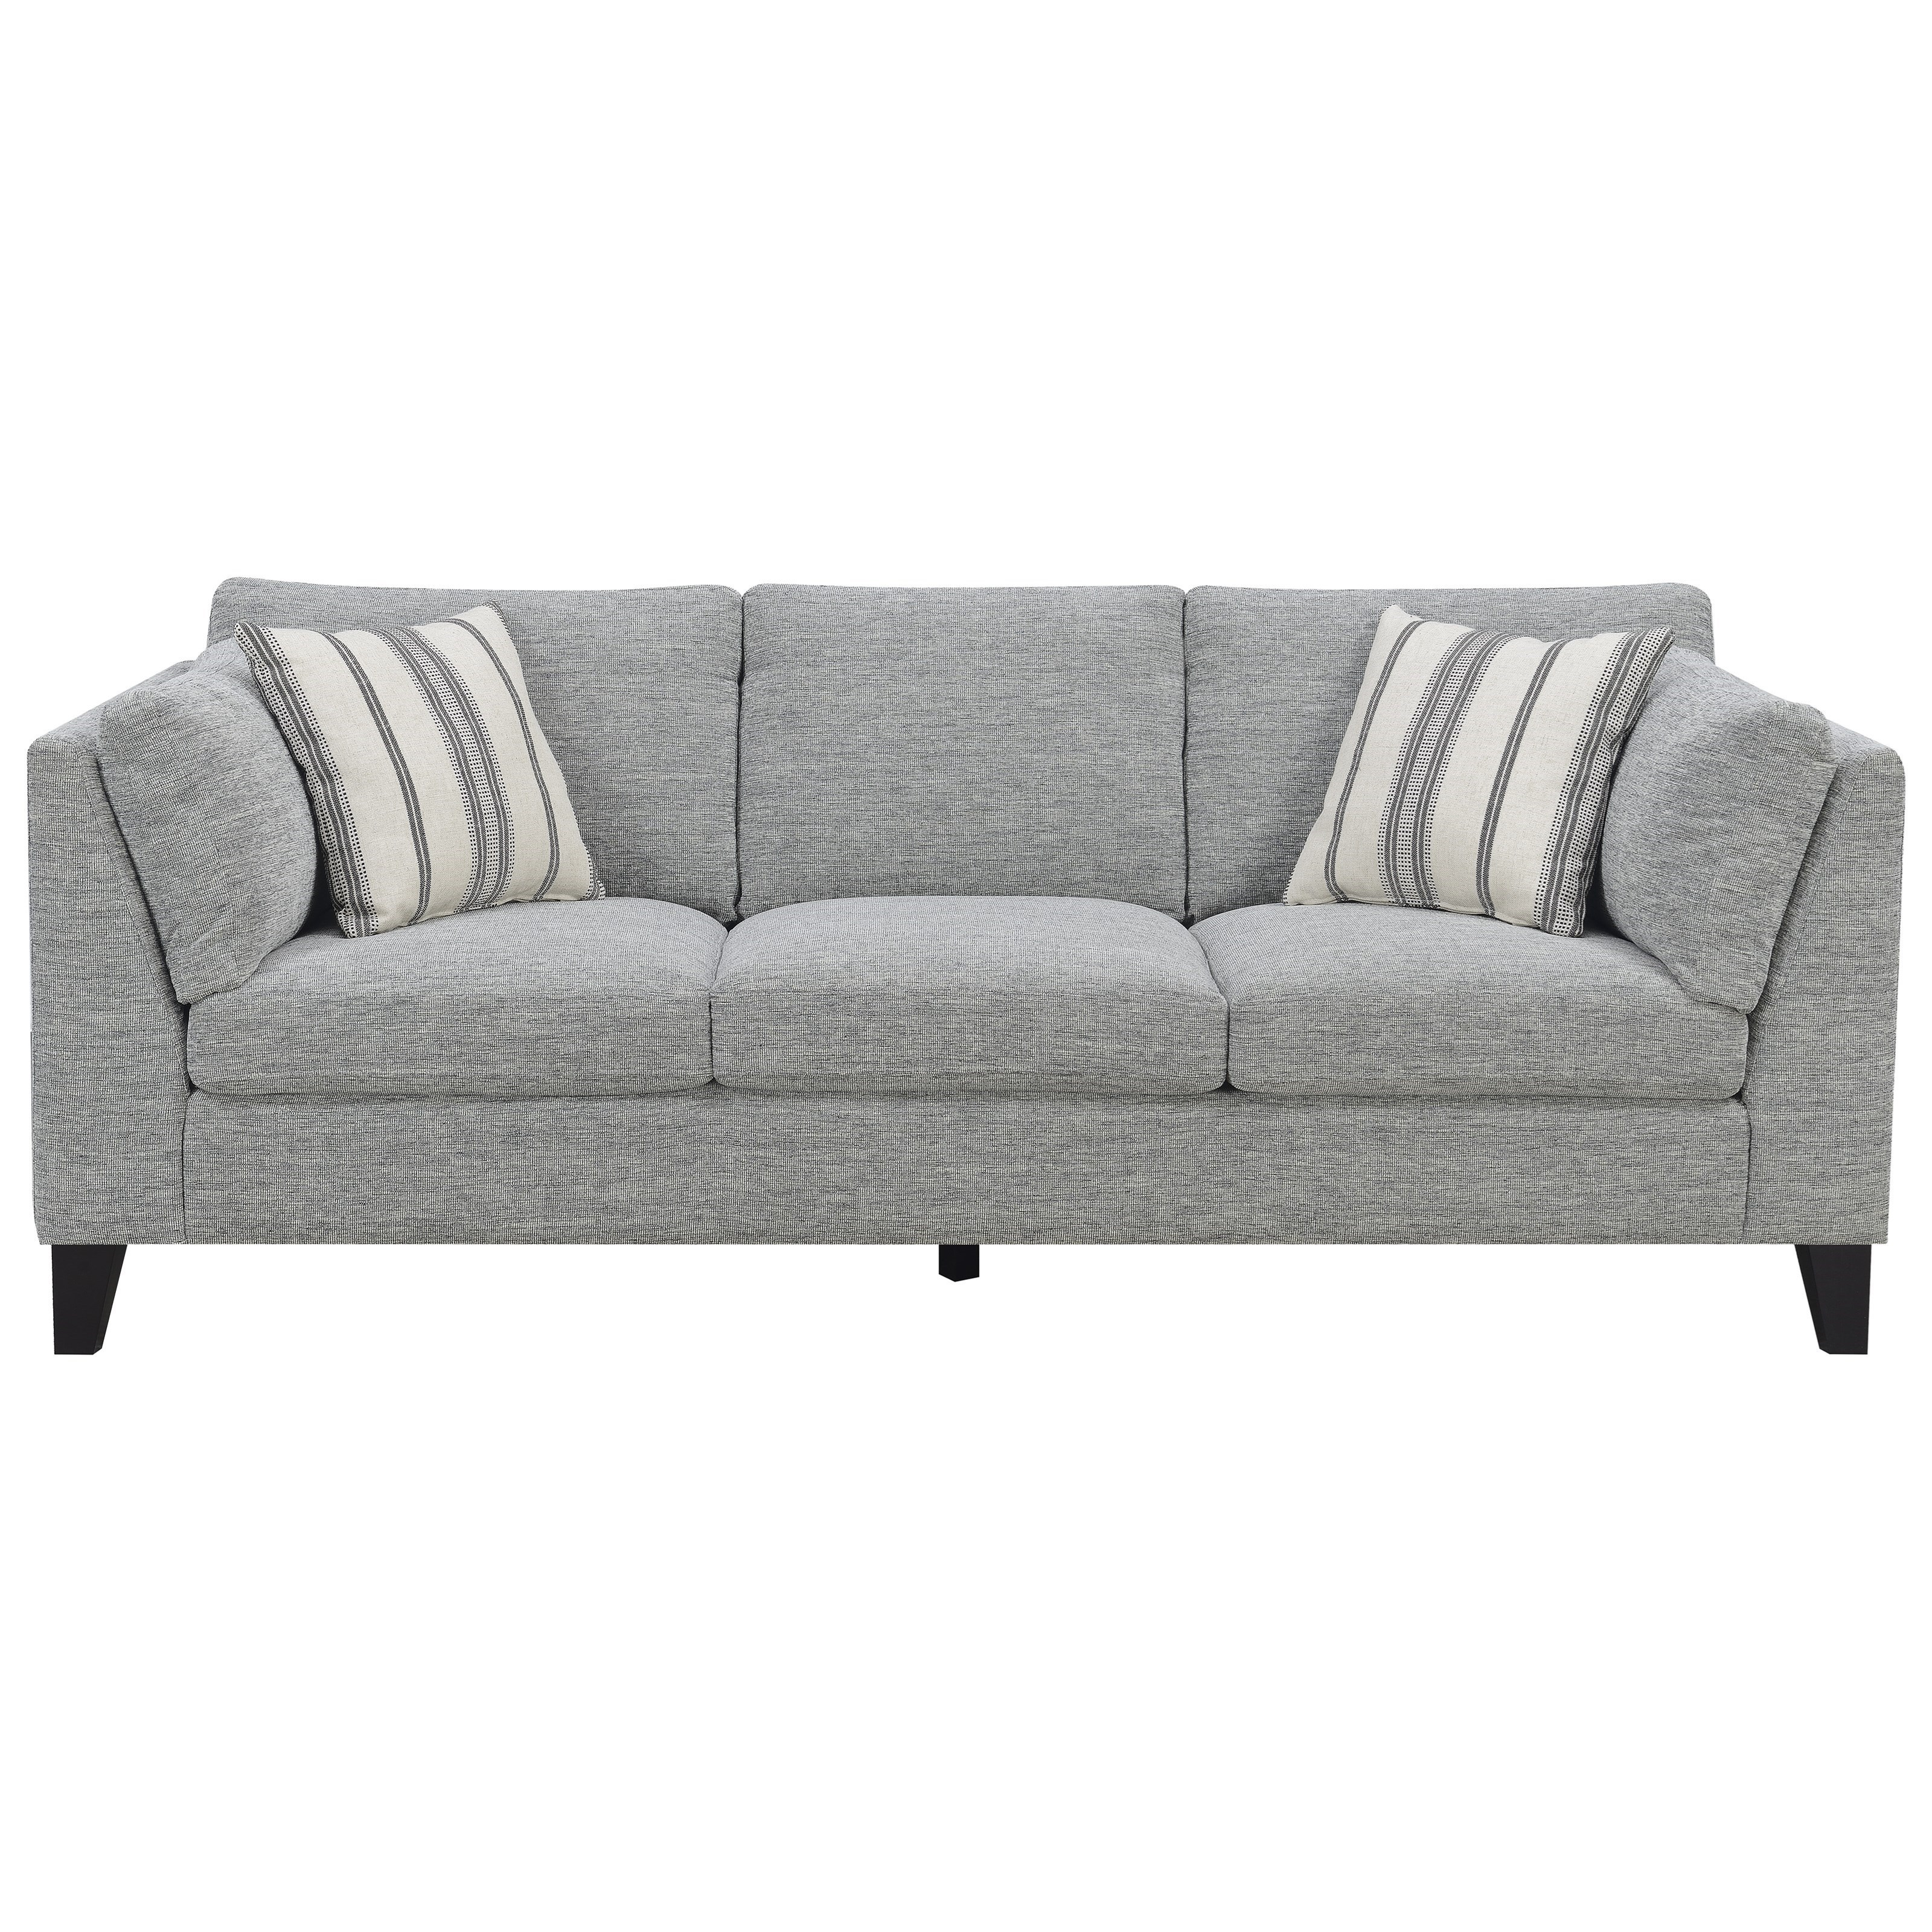 Sofa with 4 Accent Pillows